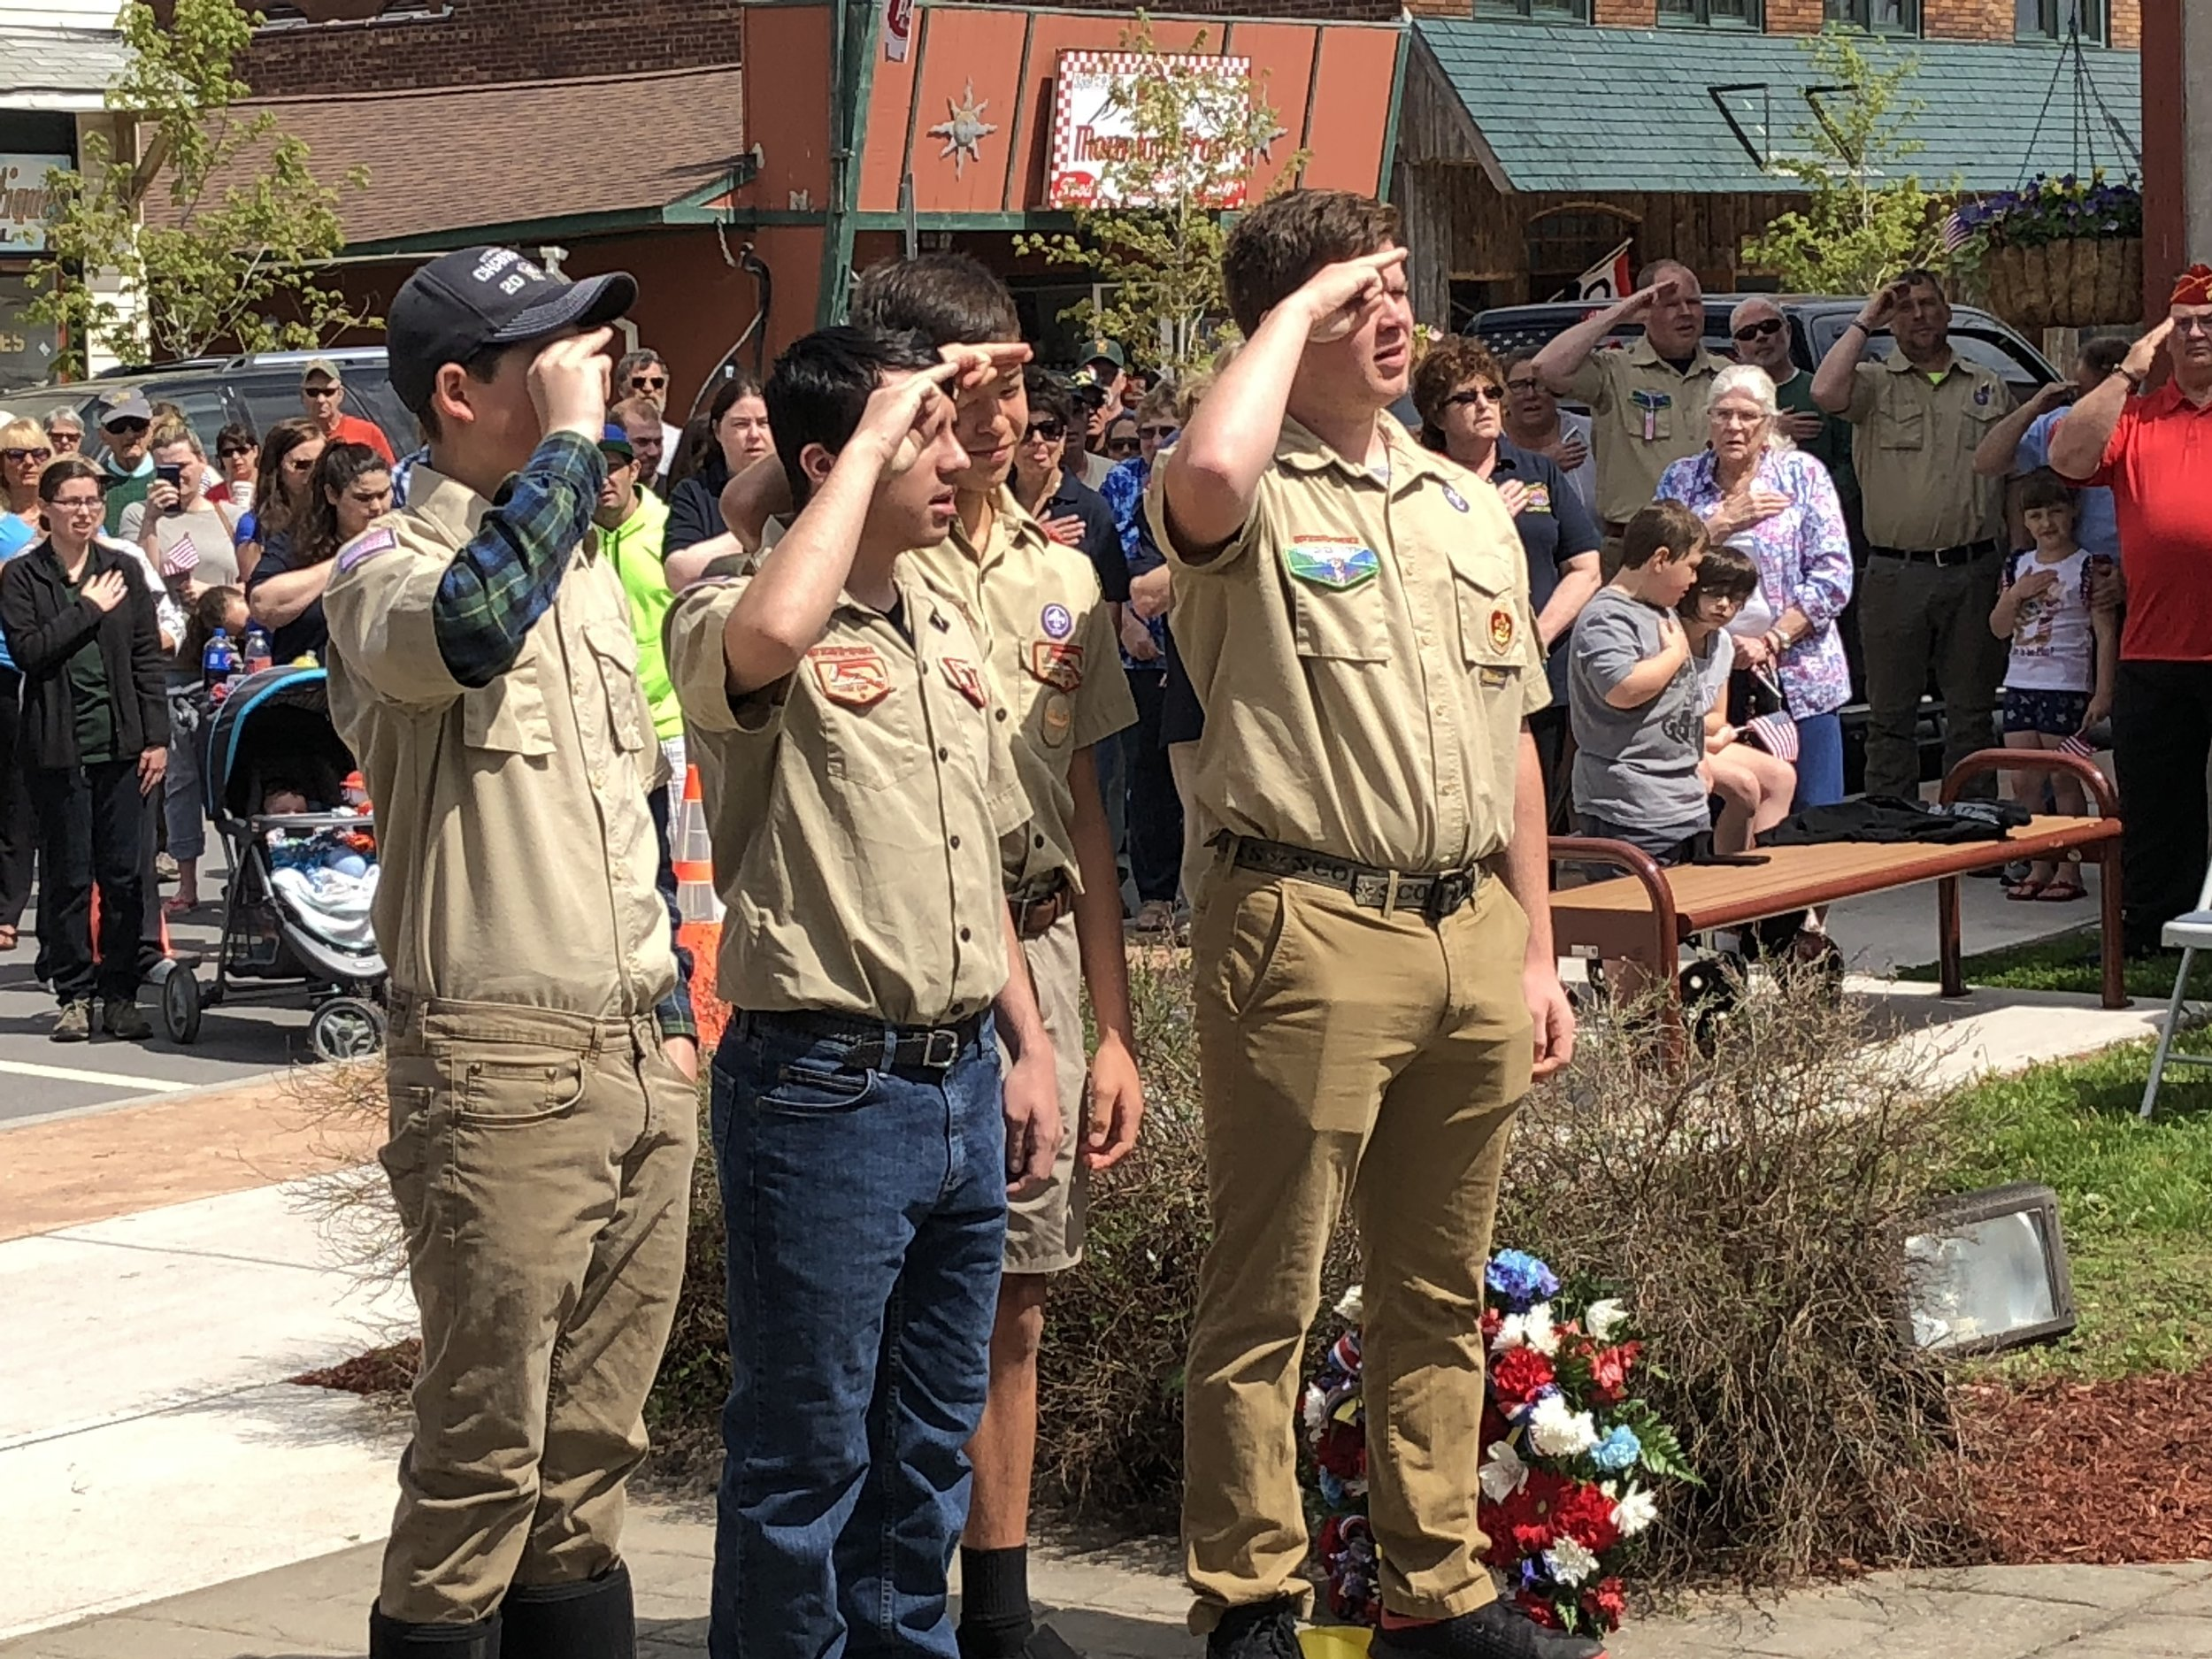 A small delegation of Tupper Lake's boy scouts who included Jamin Whitmore, Ethan Edwards, Brayden Flagg and Christopher Gilman (not in order) led the crowd Monday in the Pledge of Allegiance.